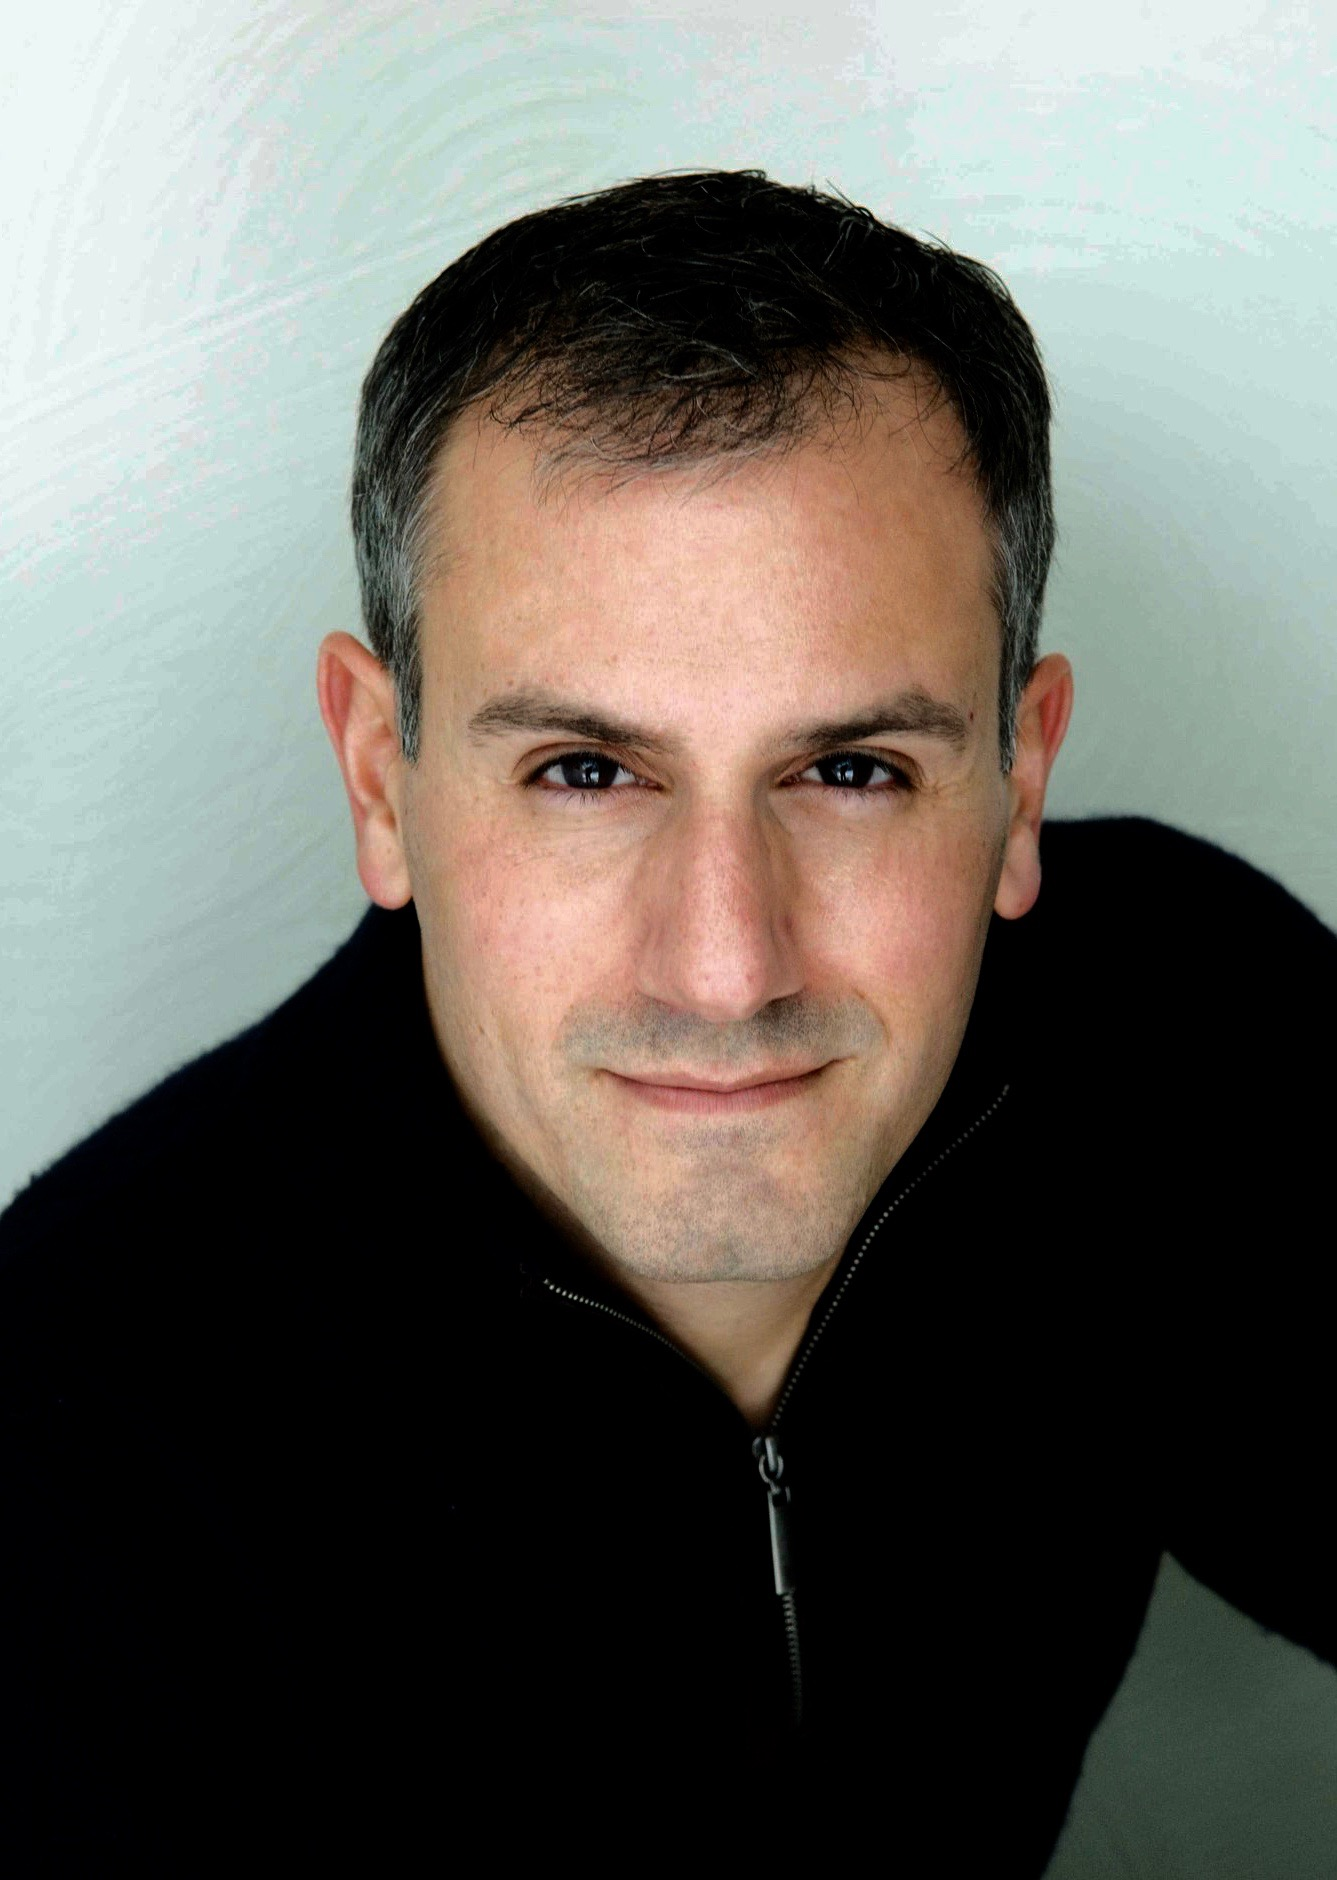 Ricardo Vila-Roger plays Lorin, a man stuck low down in the office hierarchy, in Hatch's 'Gloria.'